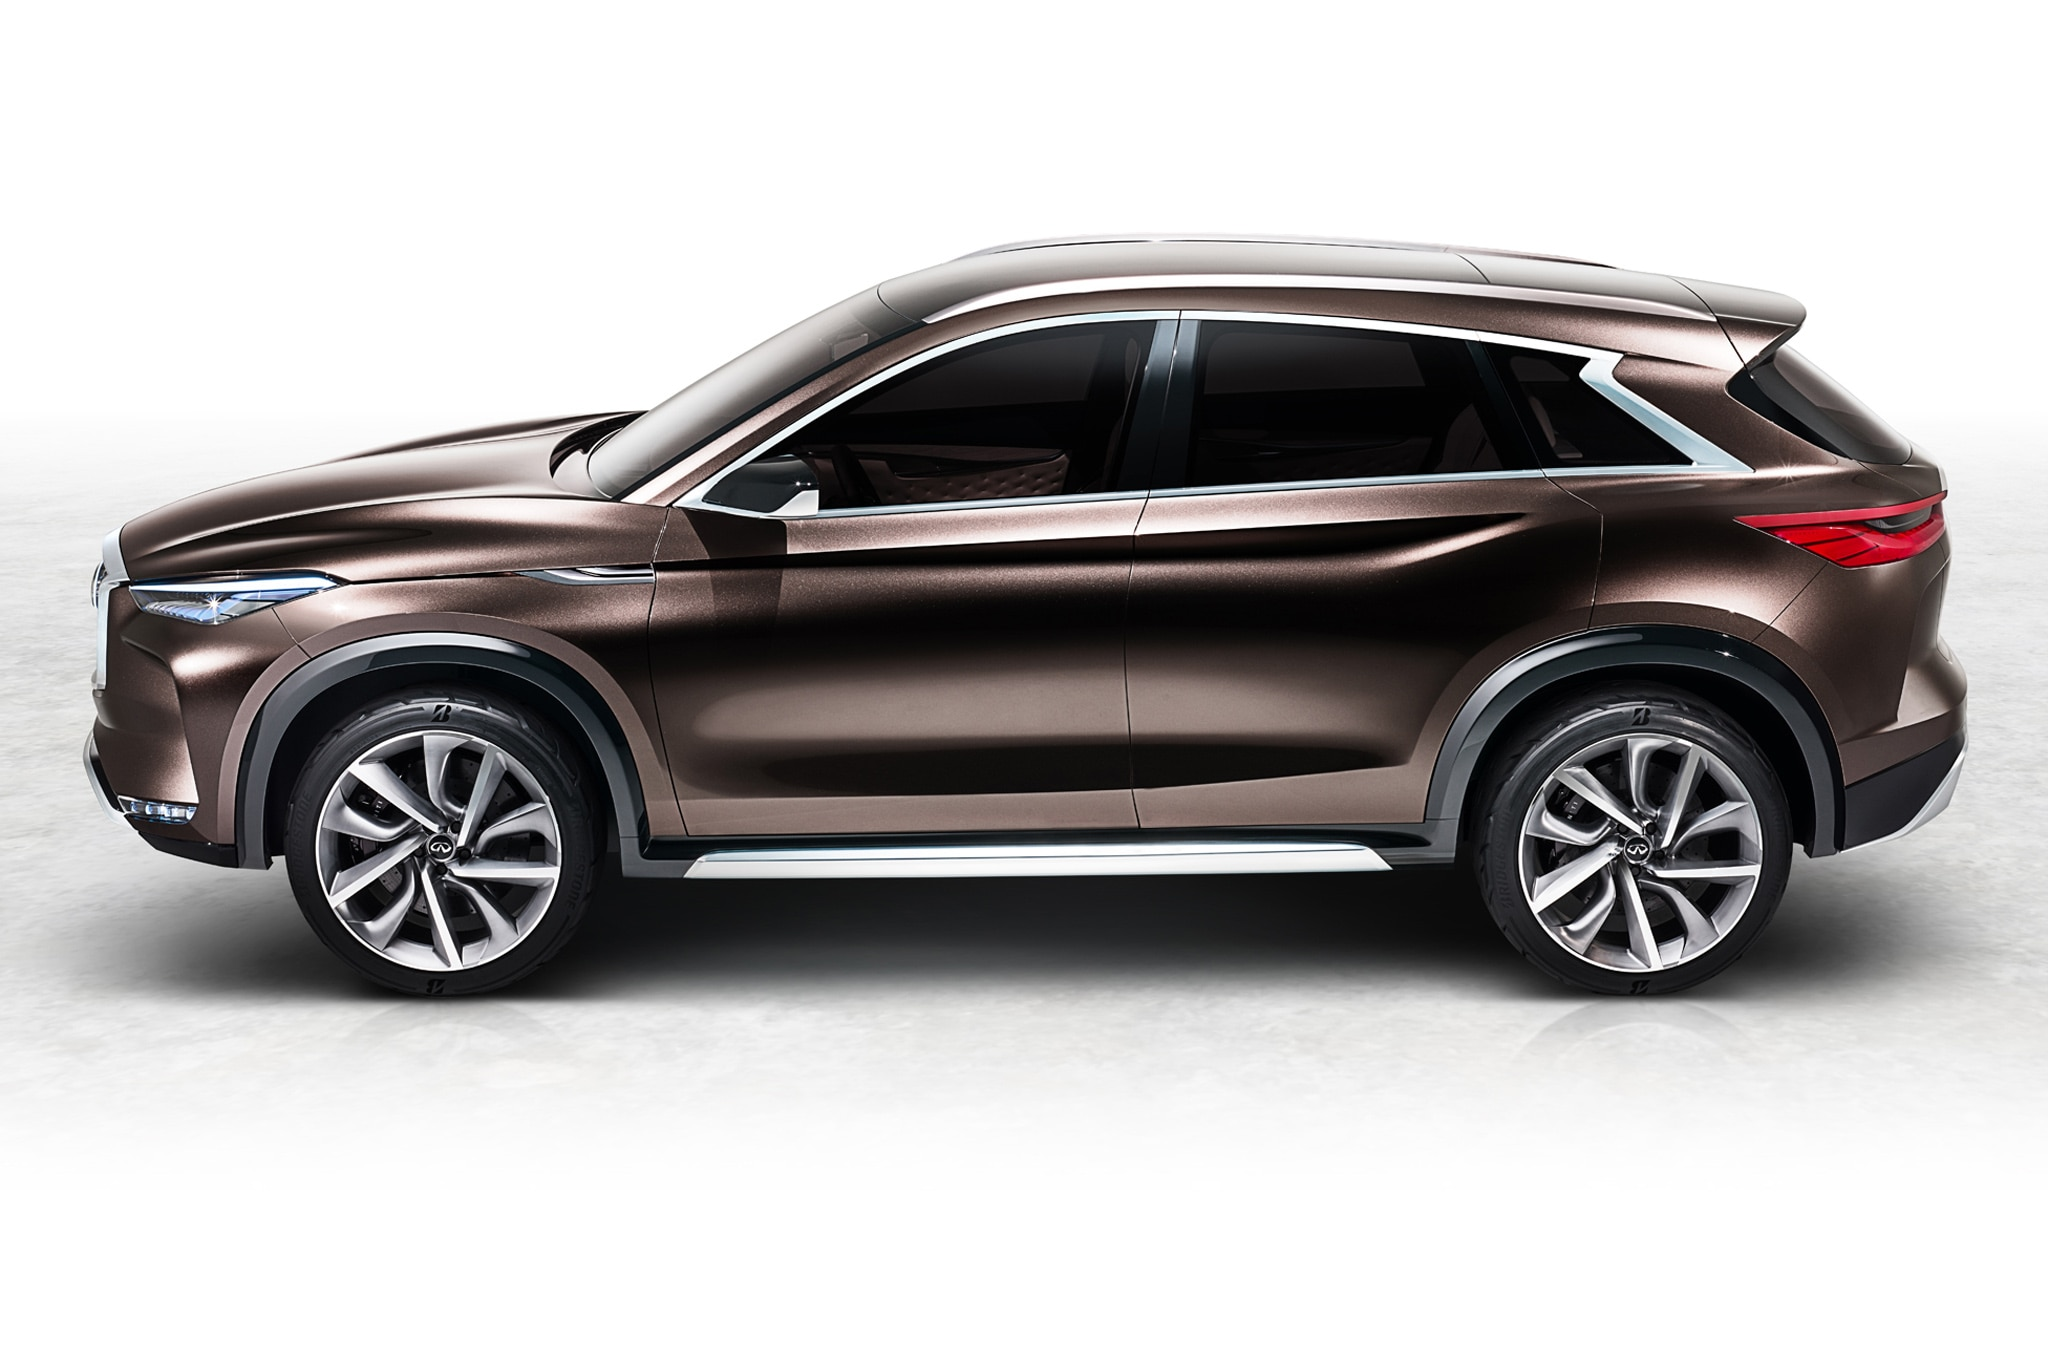 Infiniti QX50 Concept to Debut, Production Model Coming Soon